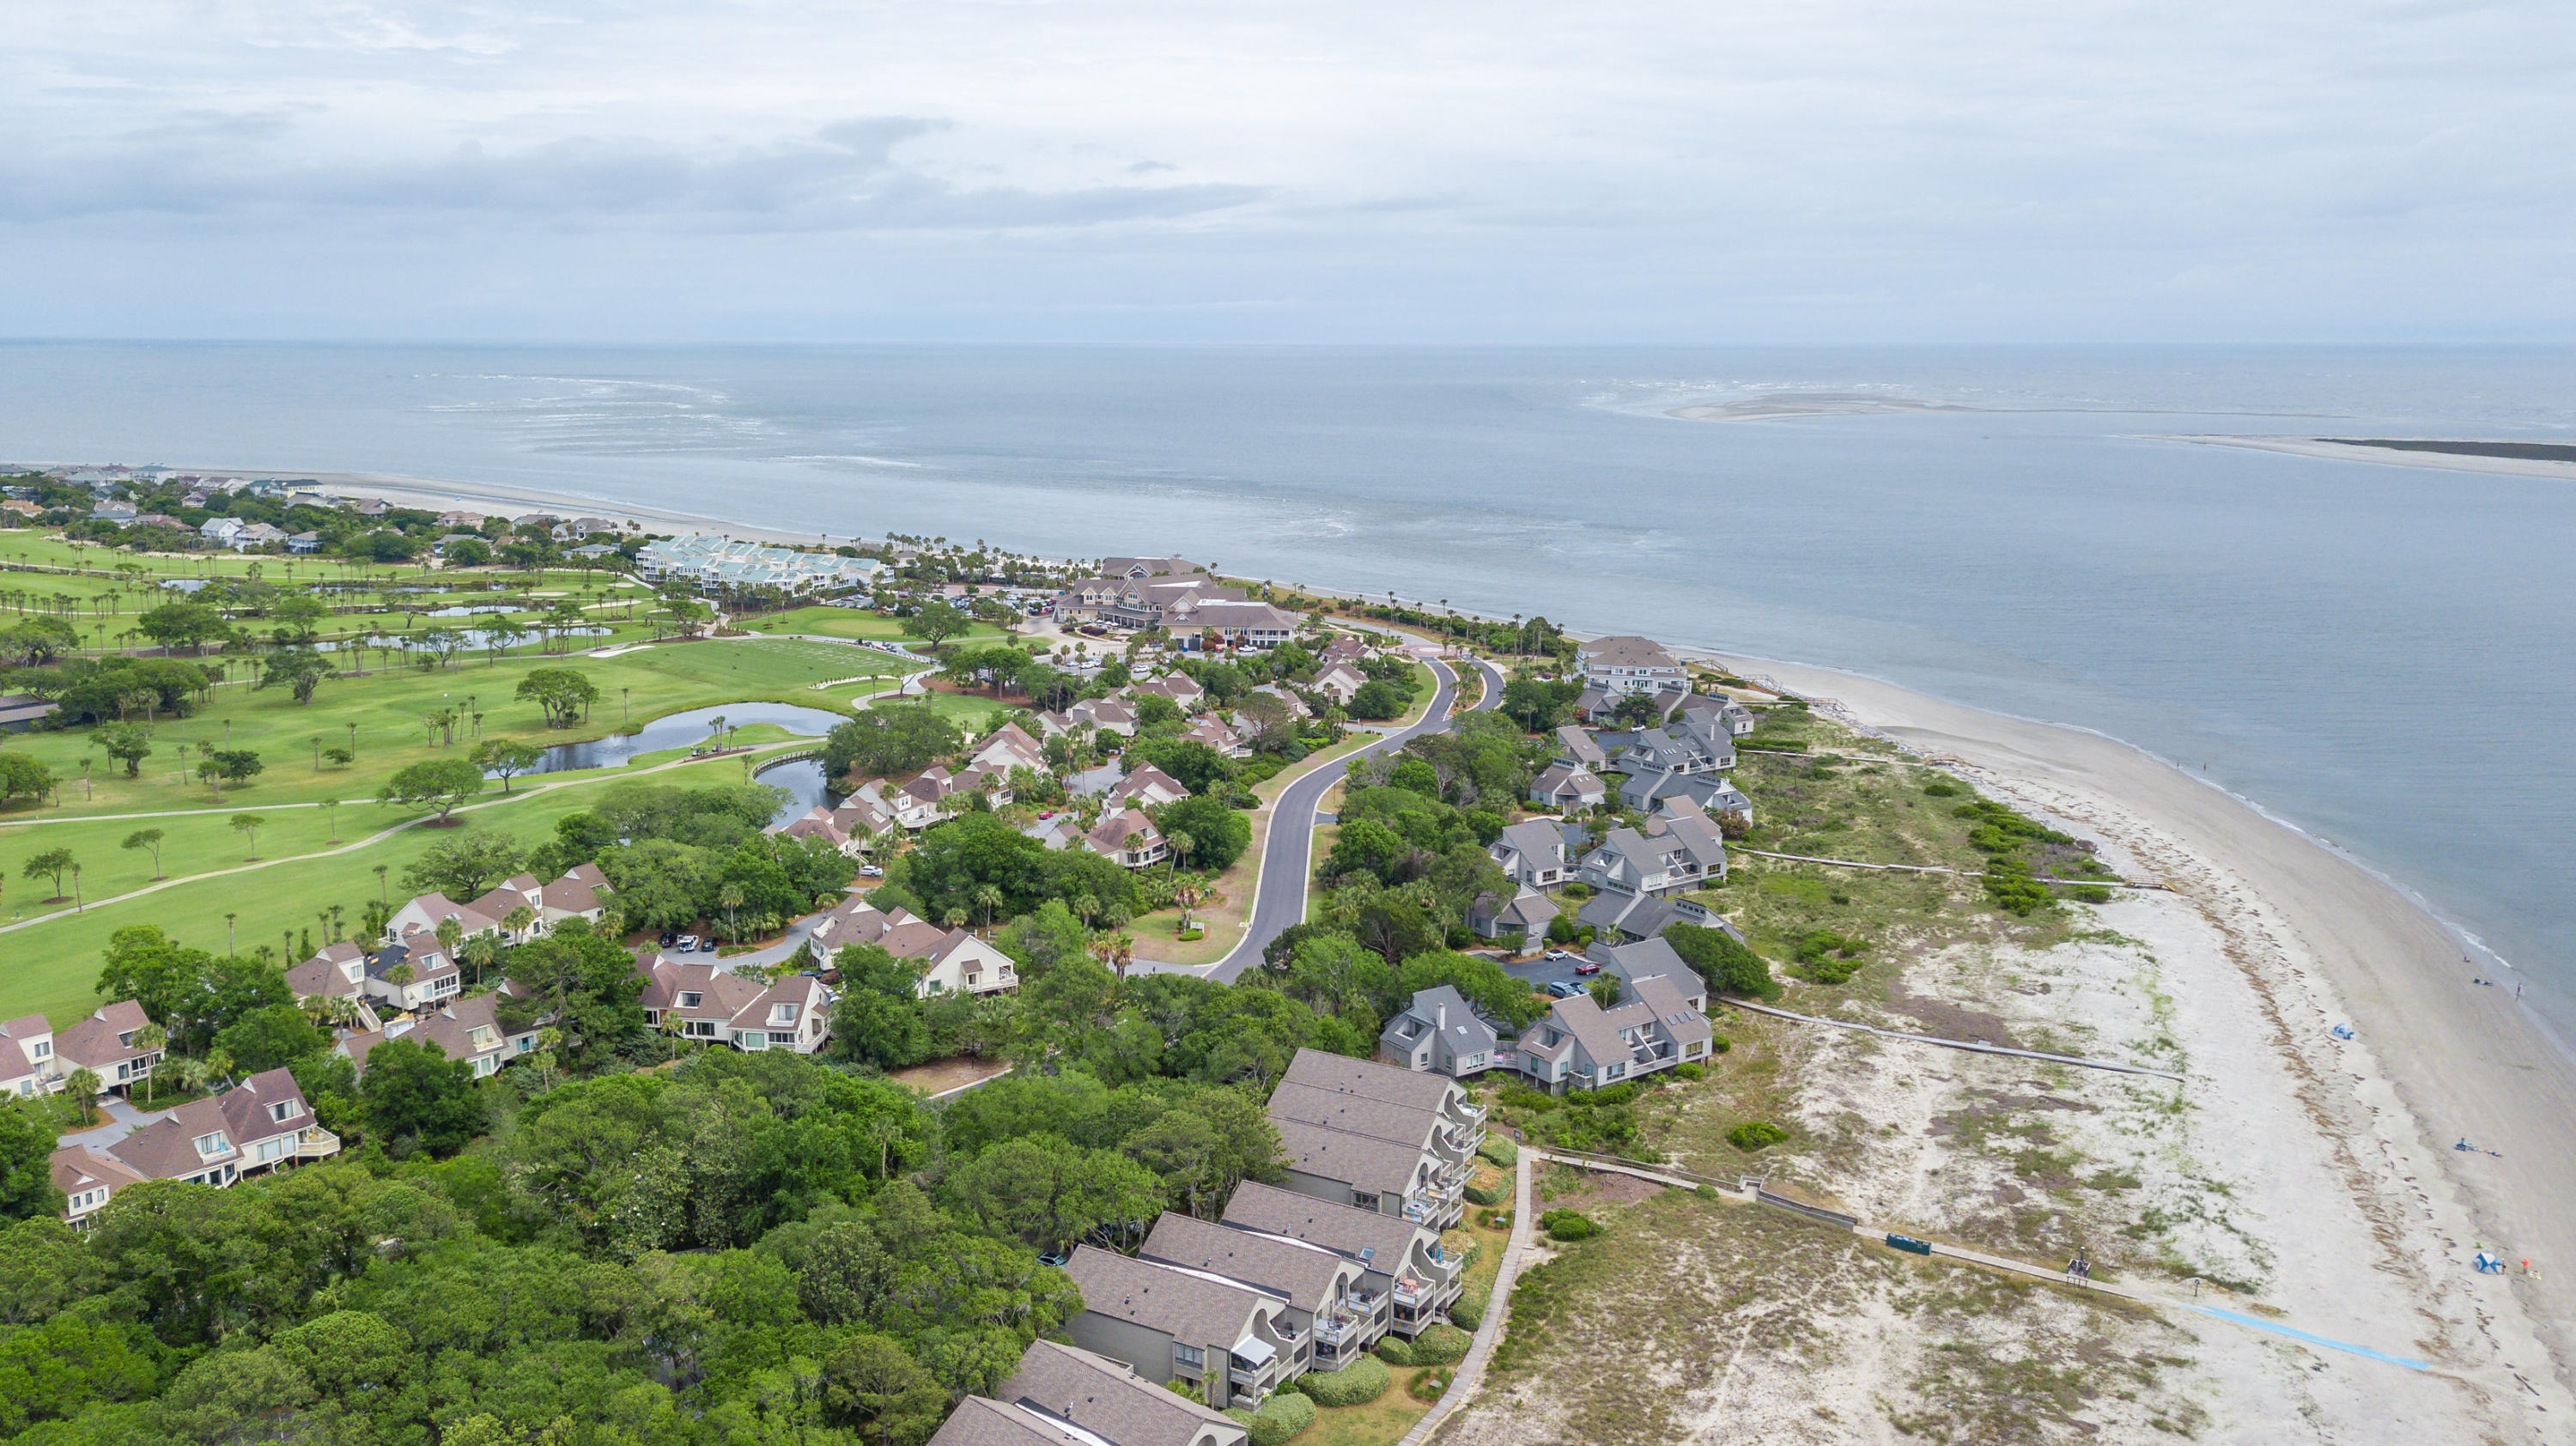 Seabrook Island Homes For Sale - 1329 Pelican Watch Villas, Seabrook Island, SC - 14